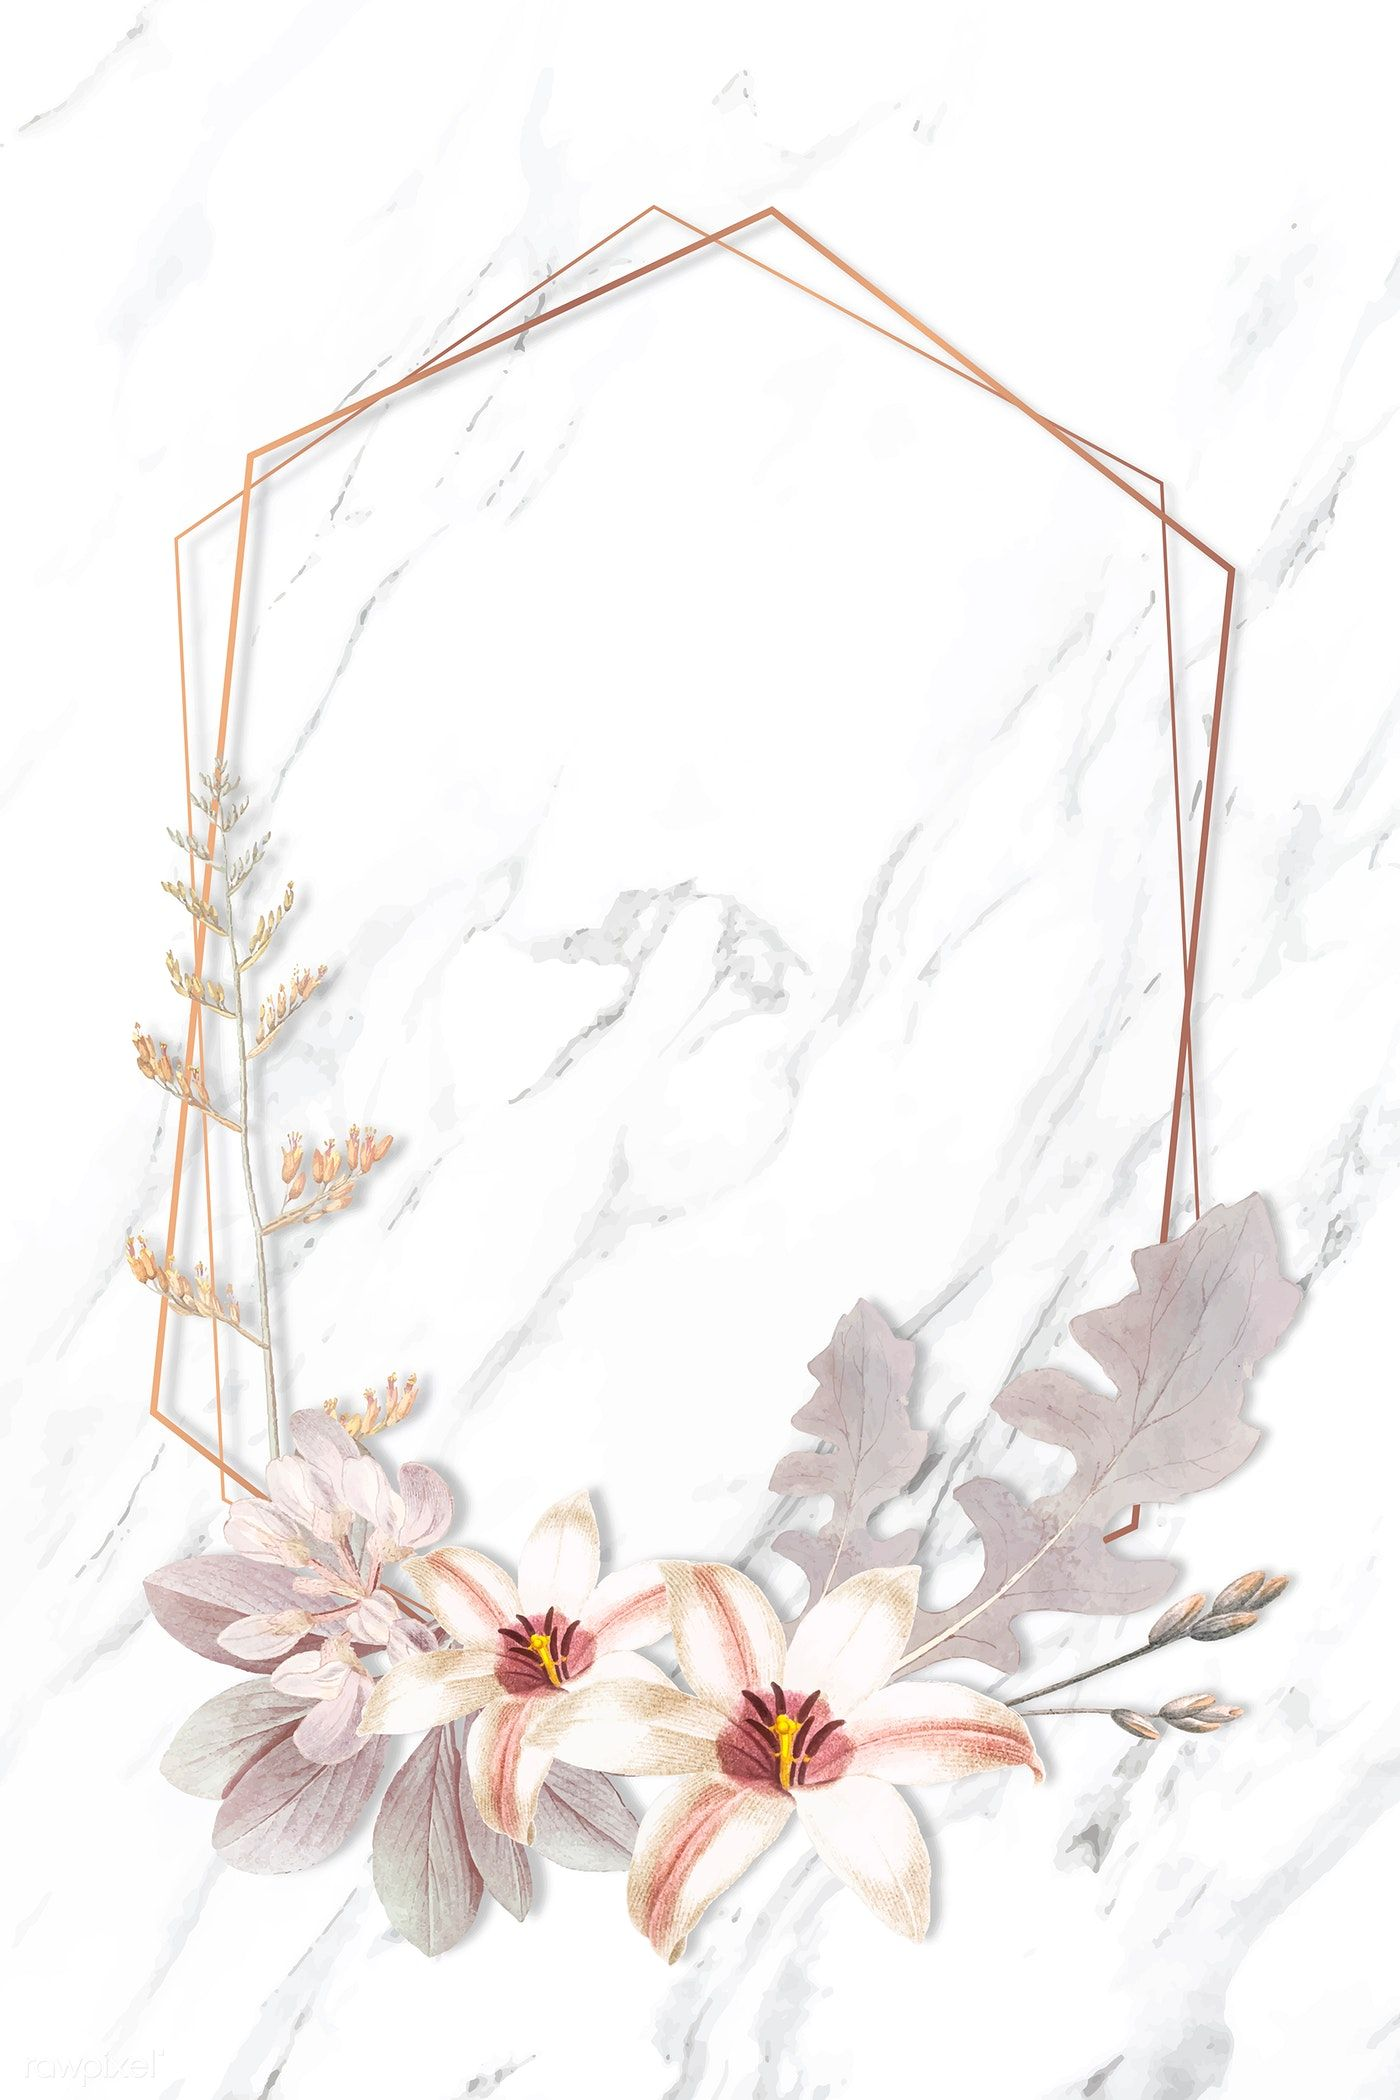 Download premium vector of Frame with lily and New Zealand flax background vector by Sasi about beige pink flower, plants new zealand, Flower frame hexagonal, new zealand, and arctotis amoena 1213615